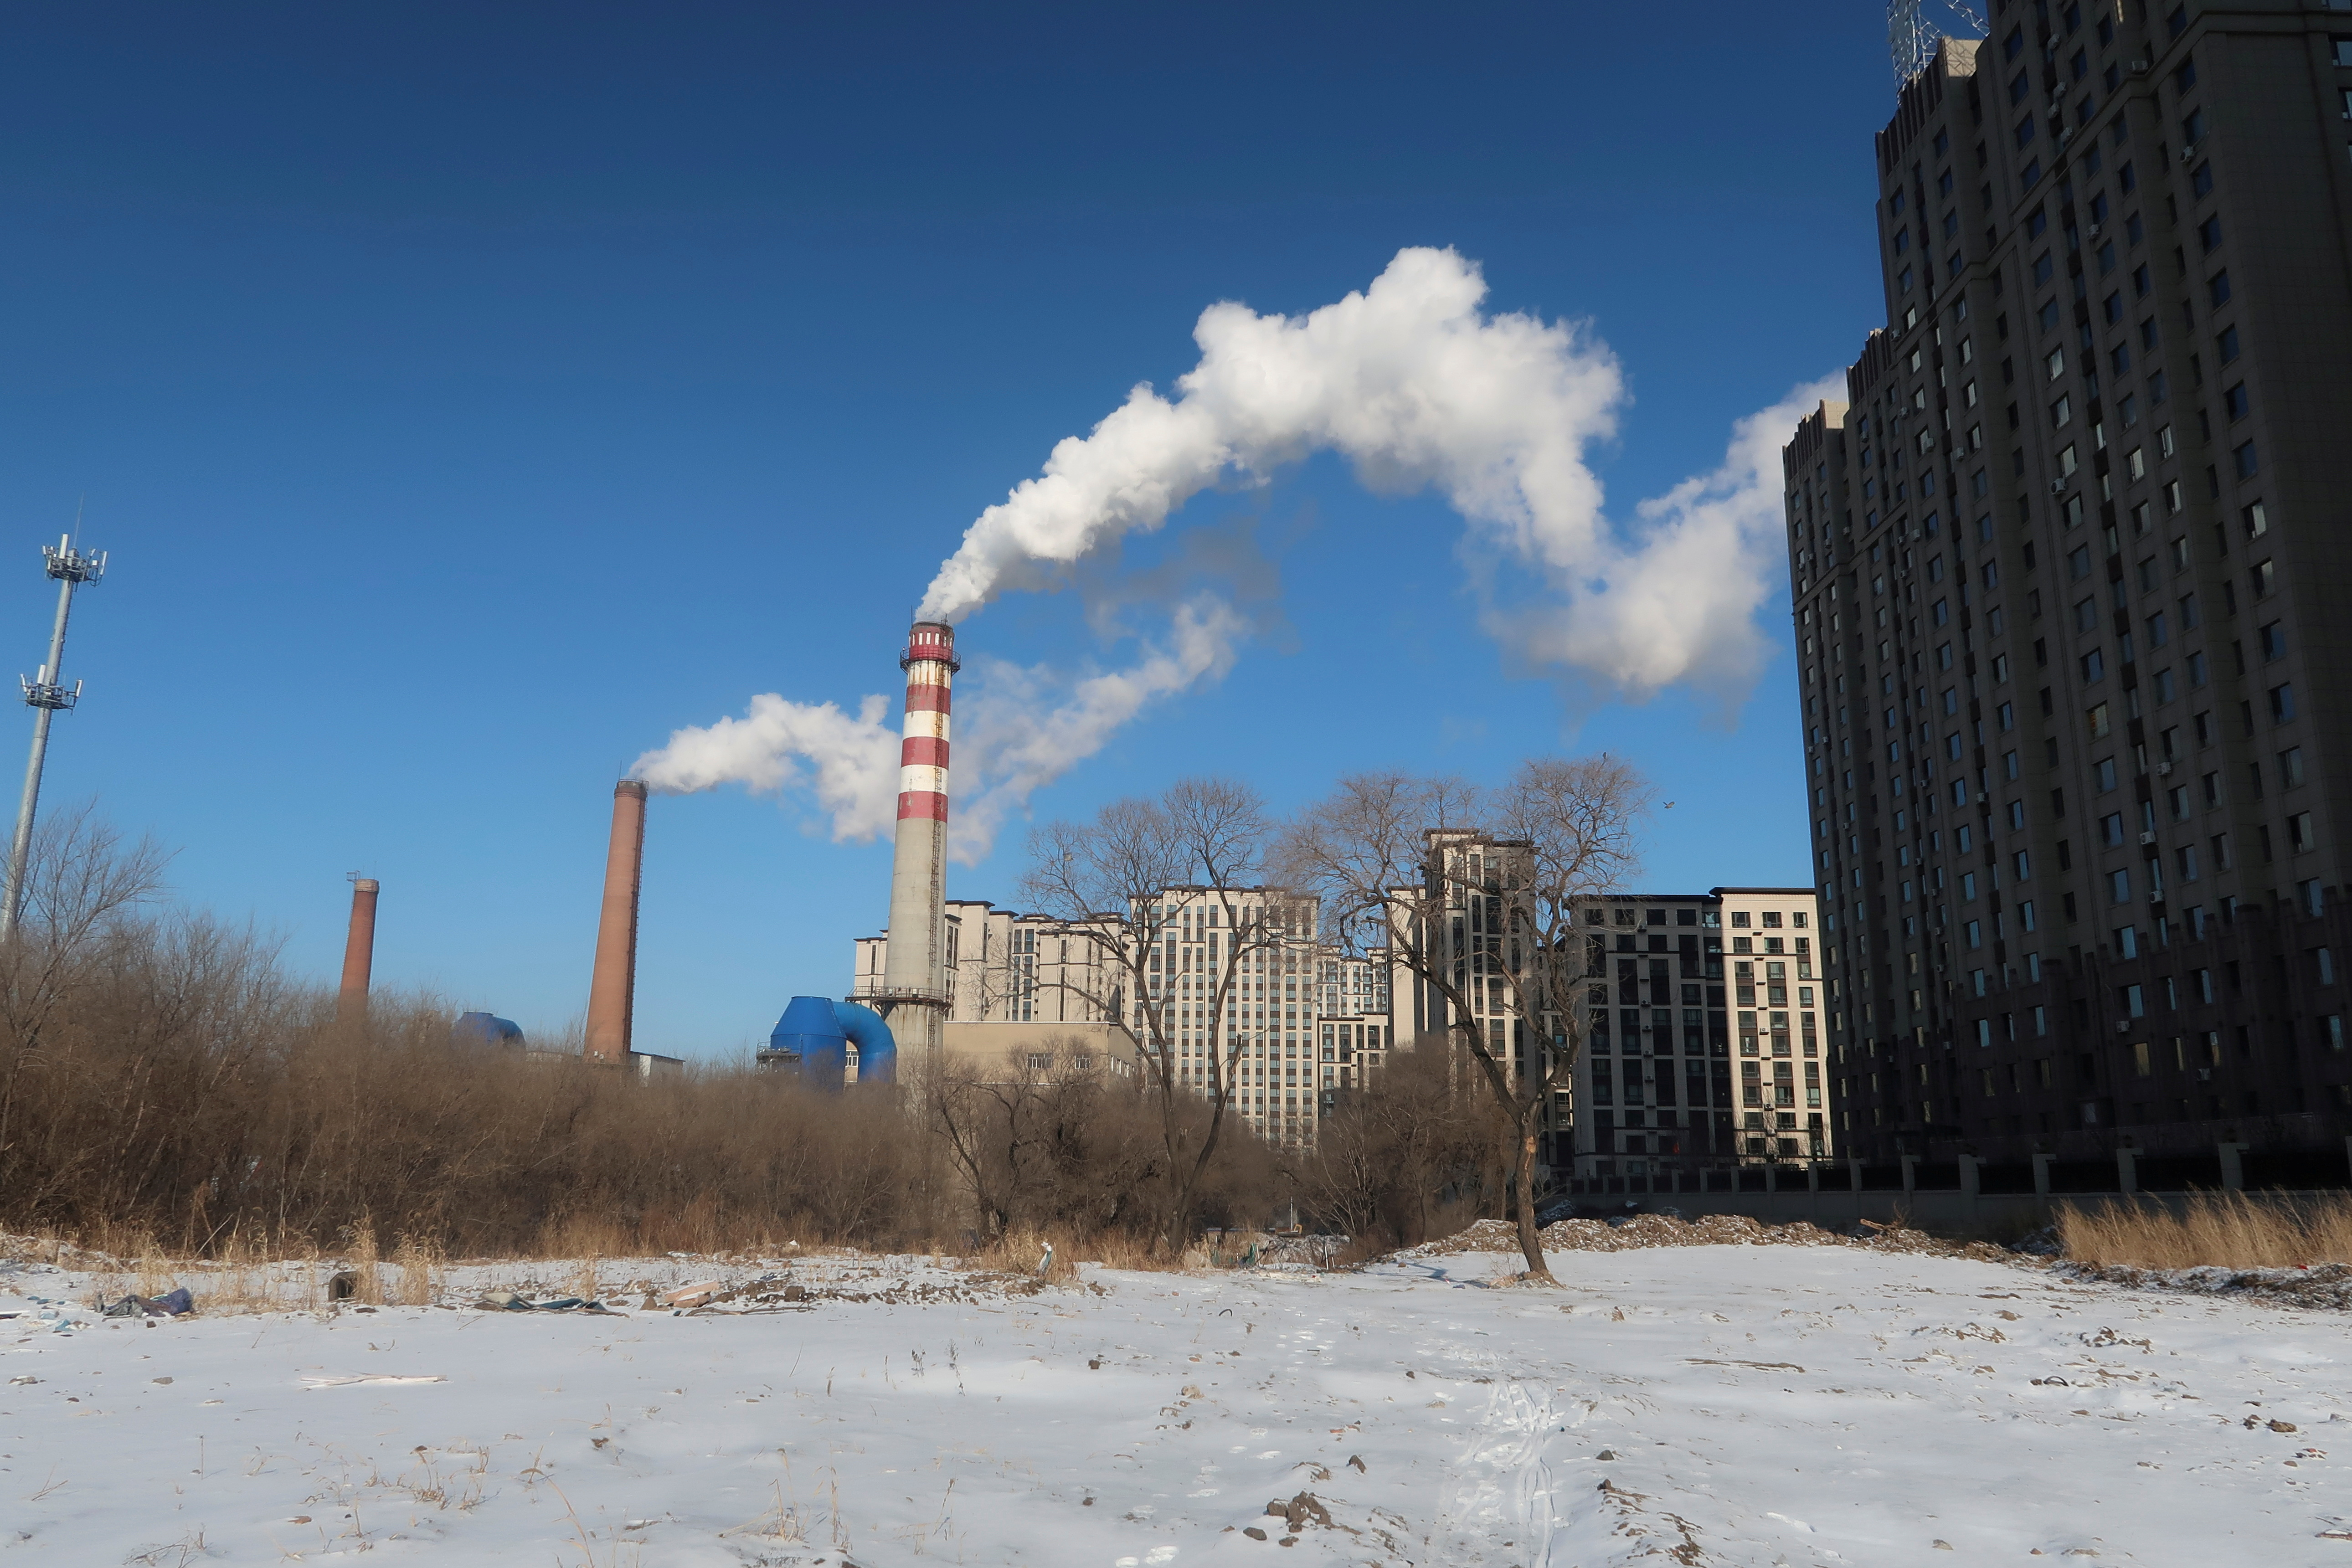 A coal-fired heating complex is seen behind the ground covered by snow in Harbin, Heilongjiang province, China November 15, 2019. REUTERS/Muyu Xu